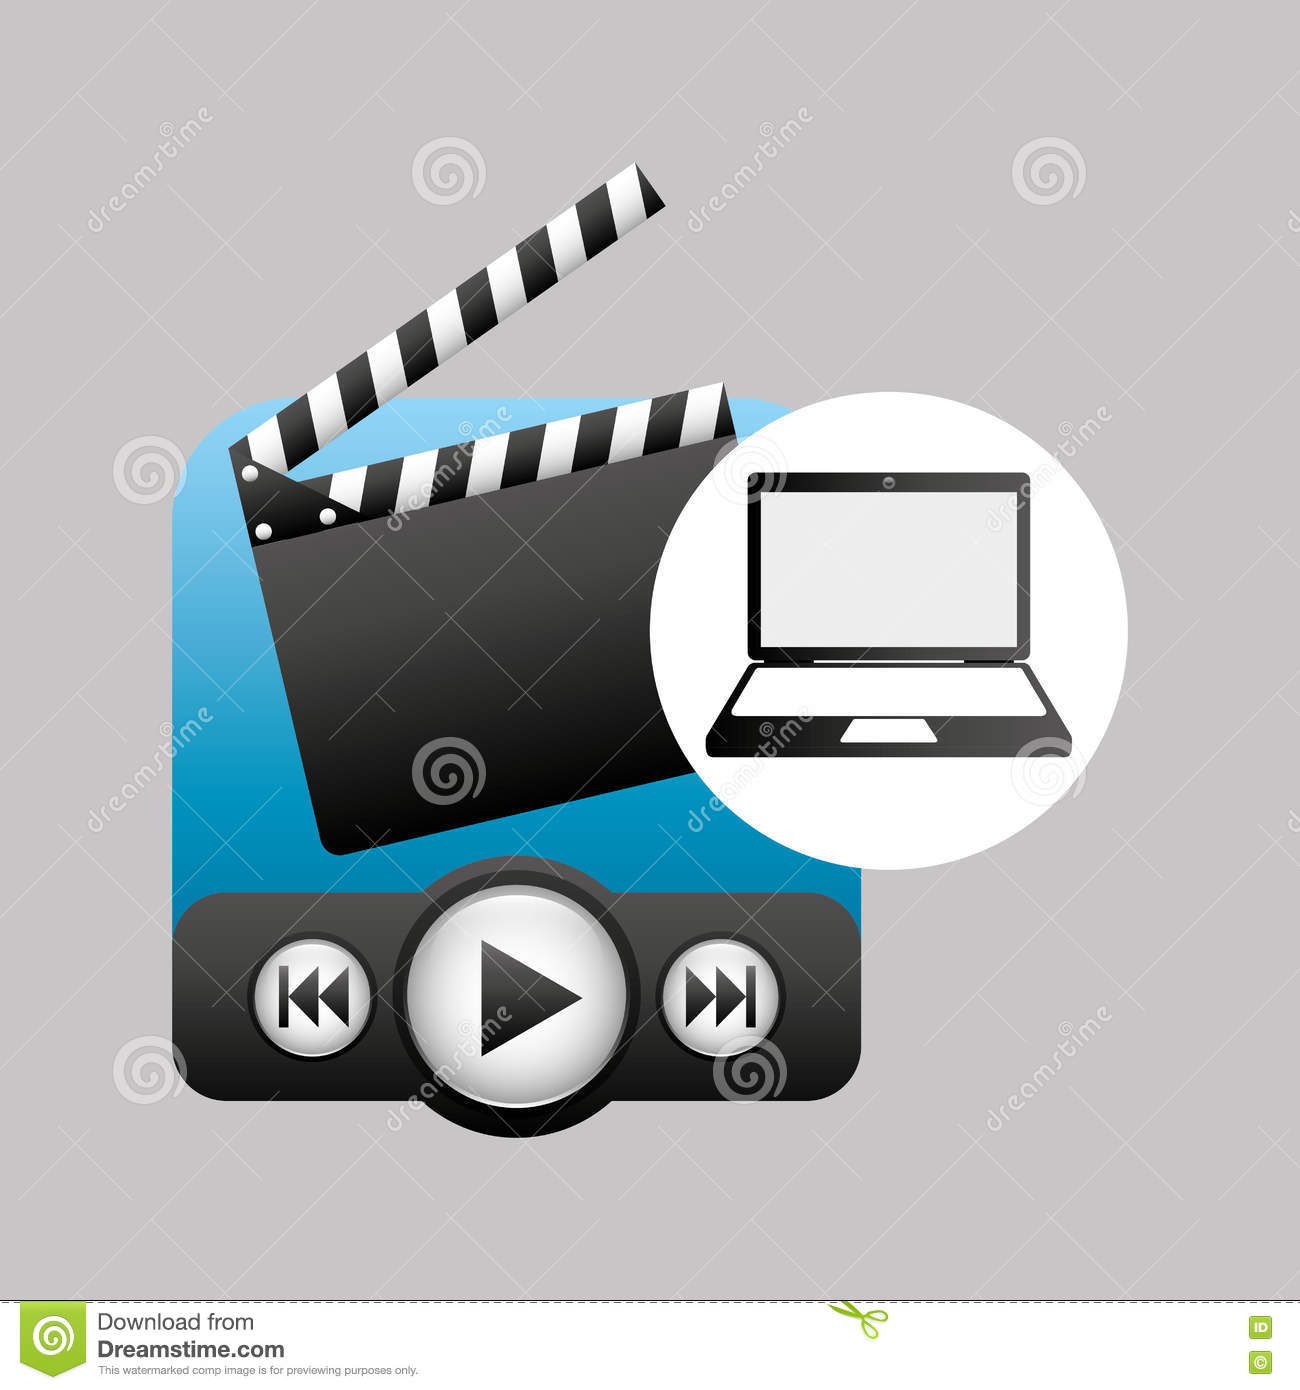 how to find media player on my laptop